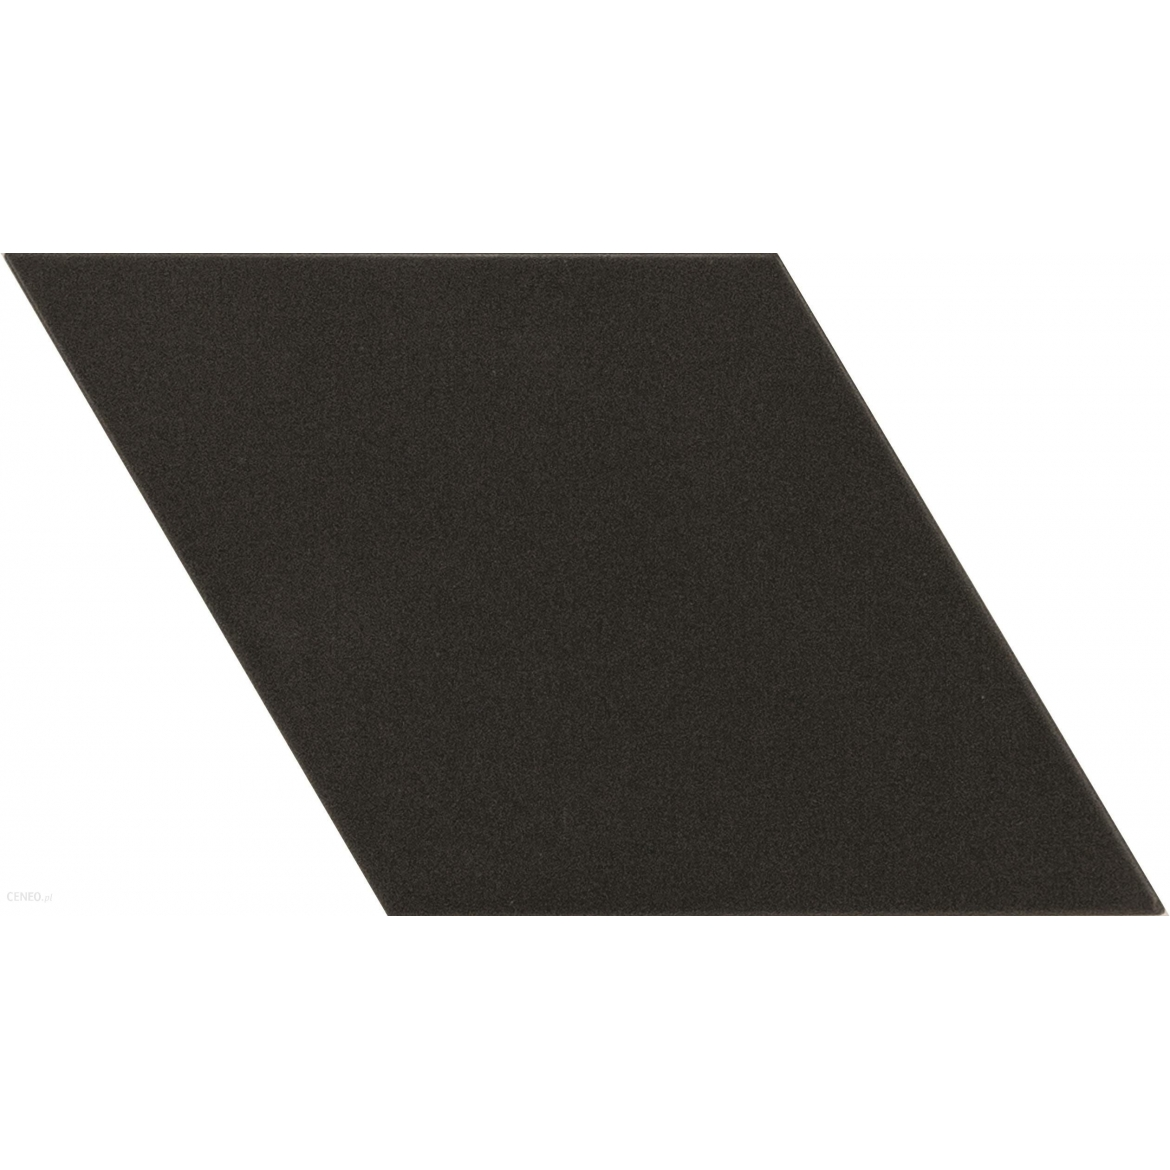 https://cerdesign.pl/9373-large_default/plytki-equipe-rhombus-smooth-black-14x24.jpg